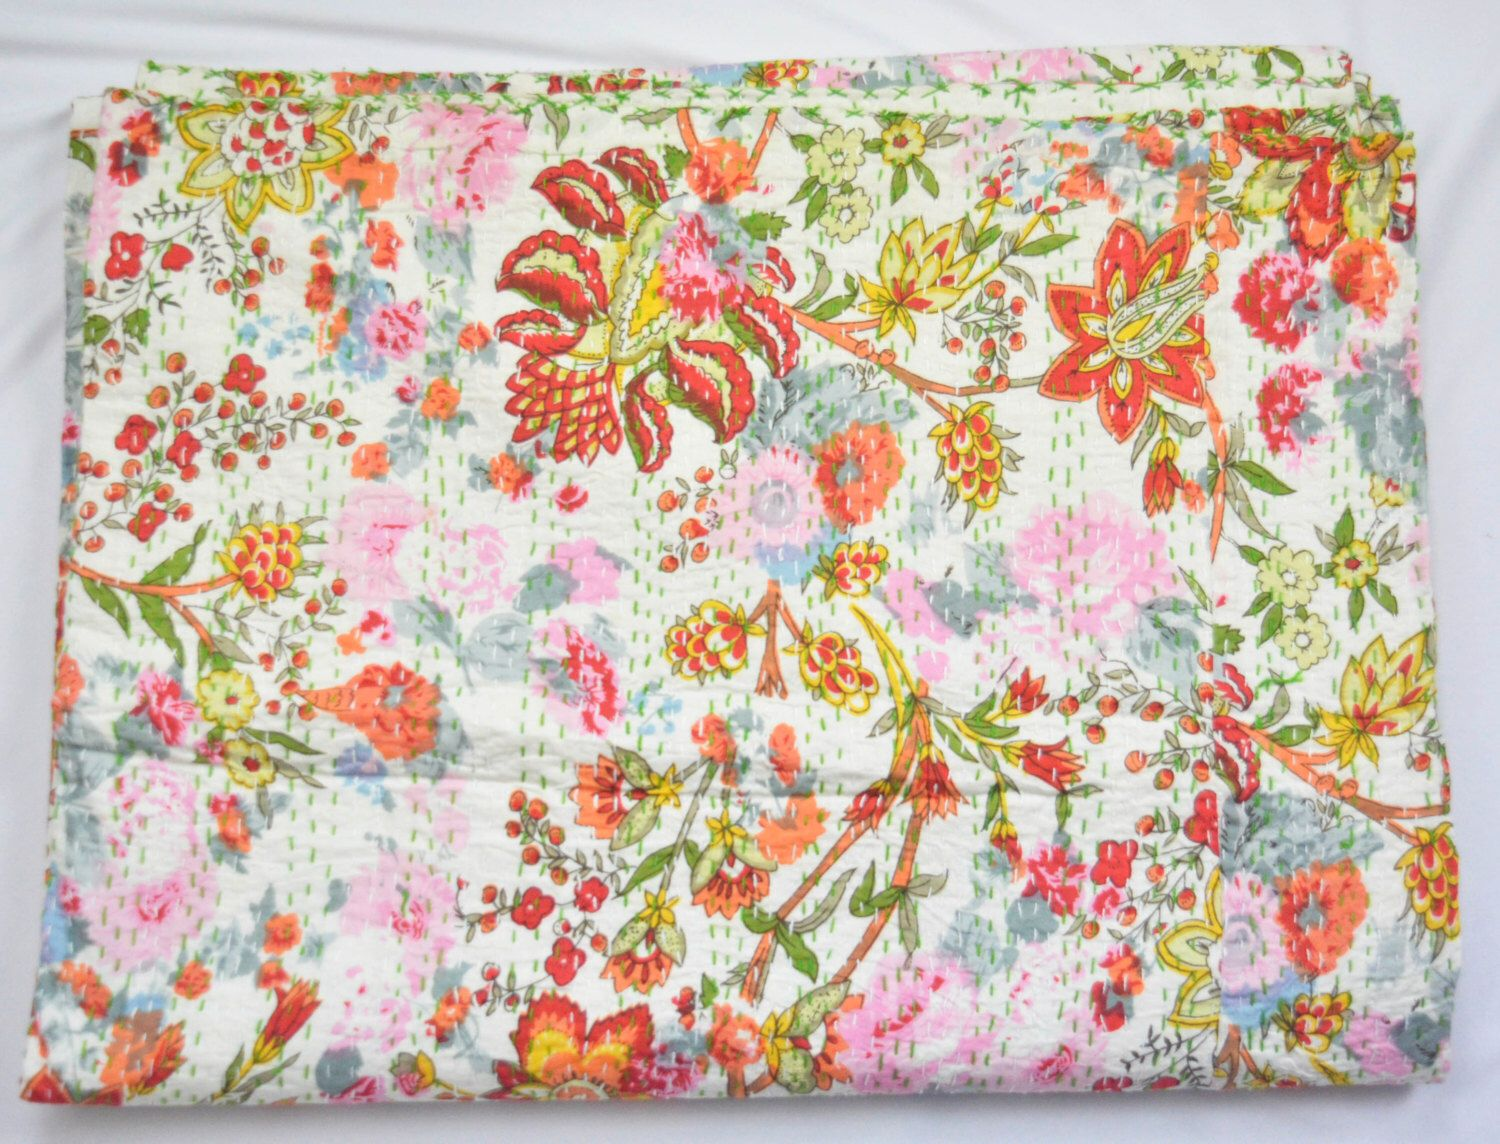 Spring Blossam FLORAL Handmade Indian kantha Quilt Queen - Twin - King- Boho Decor Reversible Kantha Quilt Throw Blanket Boho Bedding QUEEN by BombayFabricStore on Etsy https://www.etsy.com/listing/241694941/spring-blossam-floral-handmade-indian